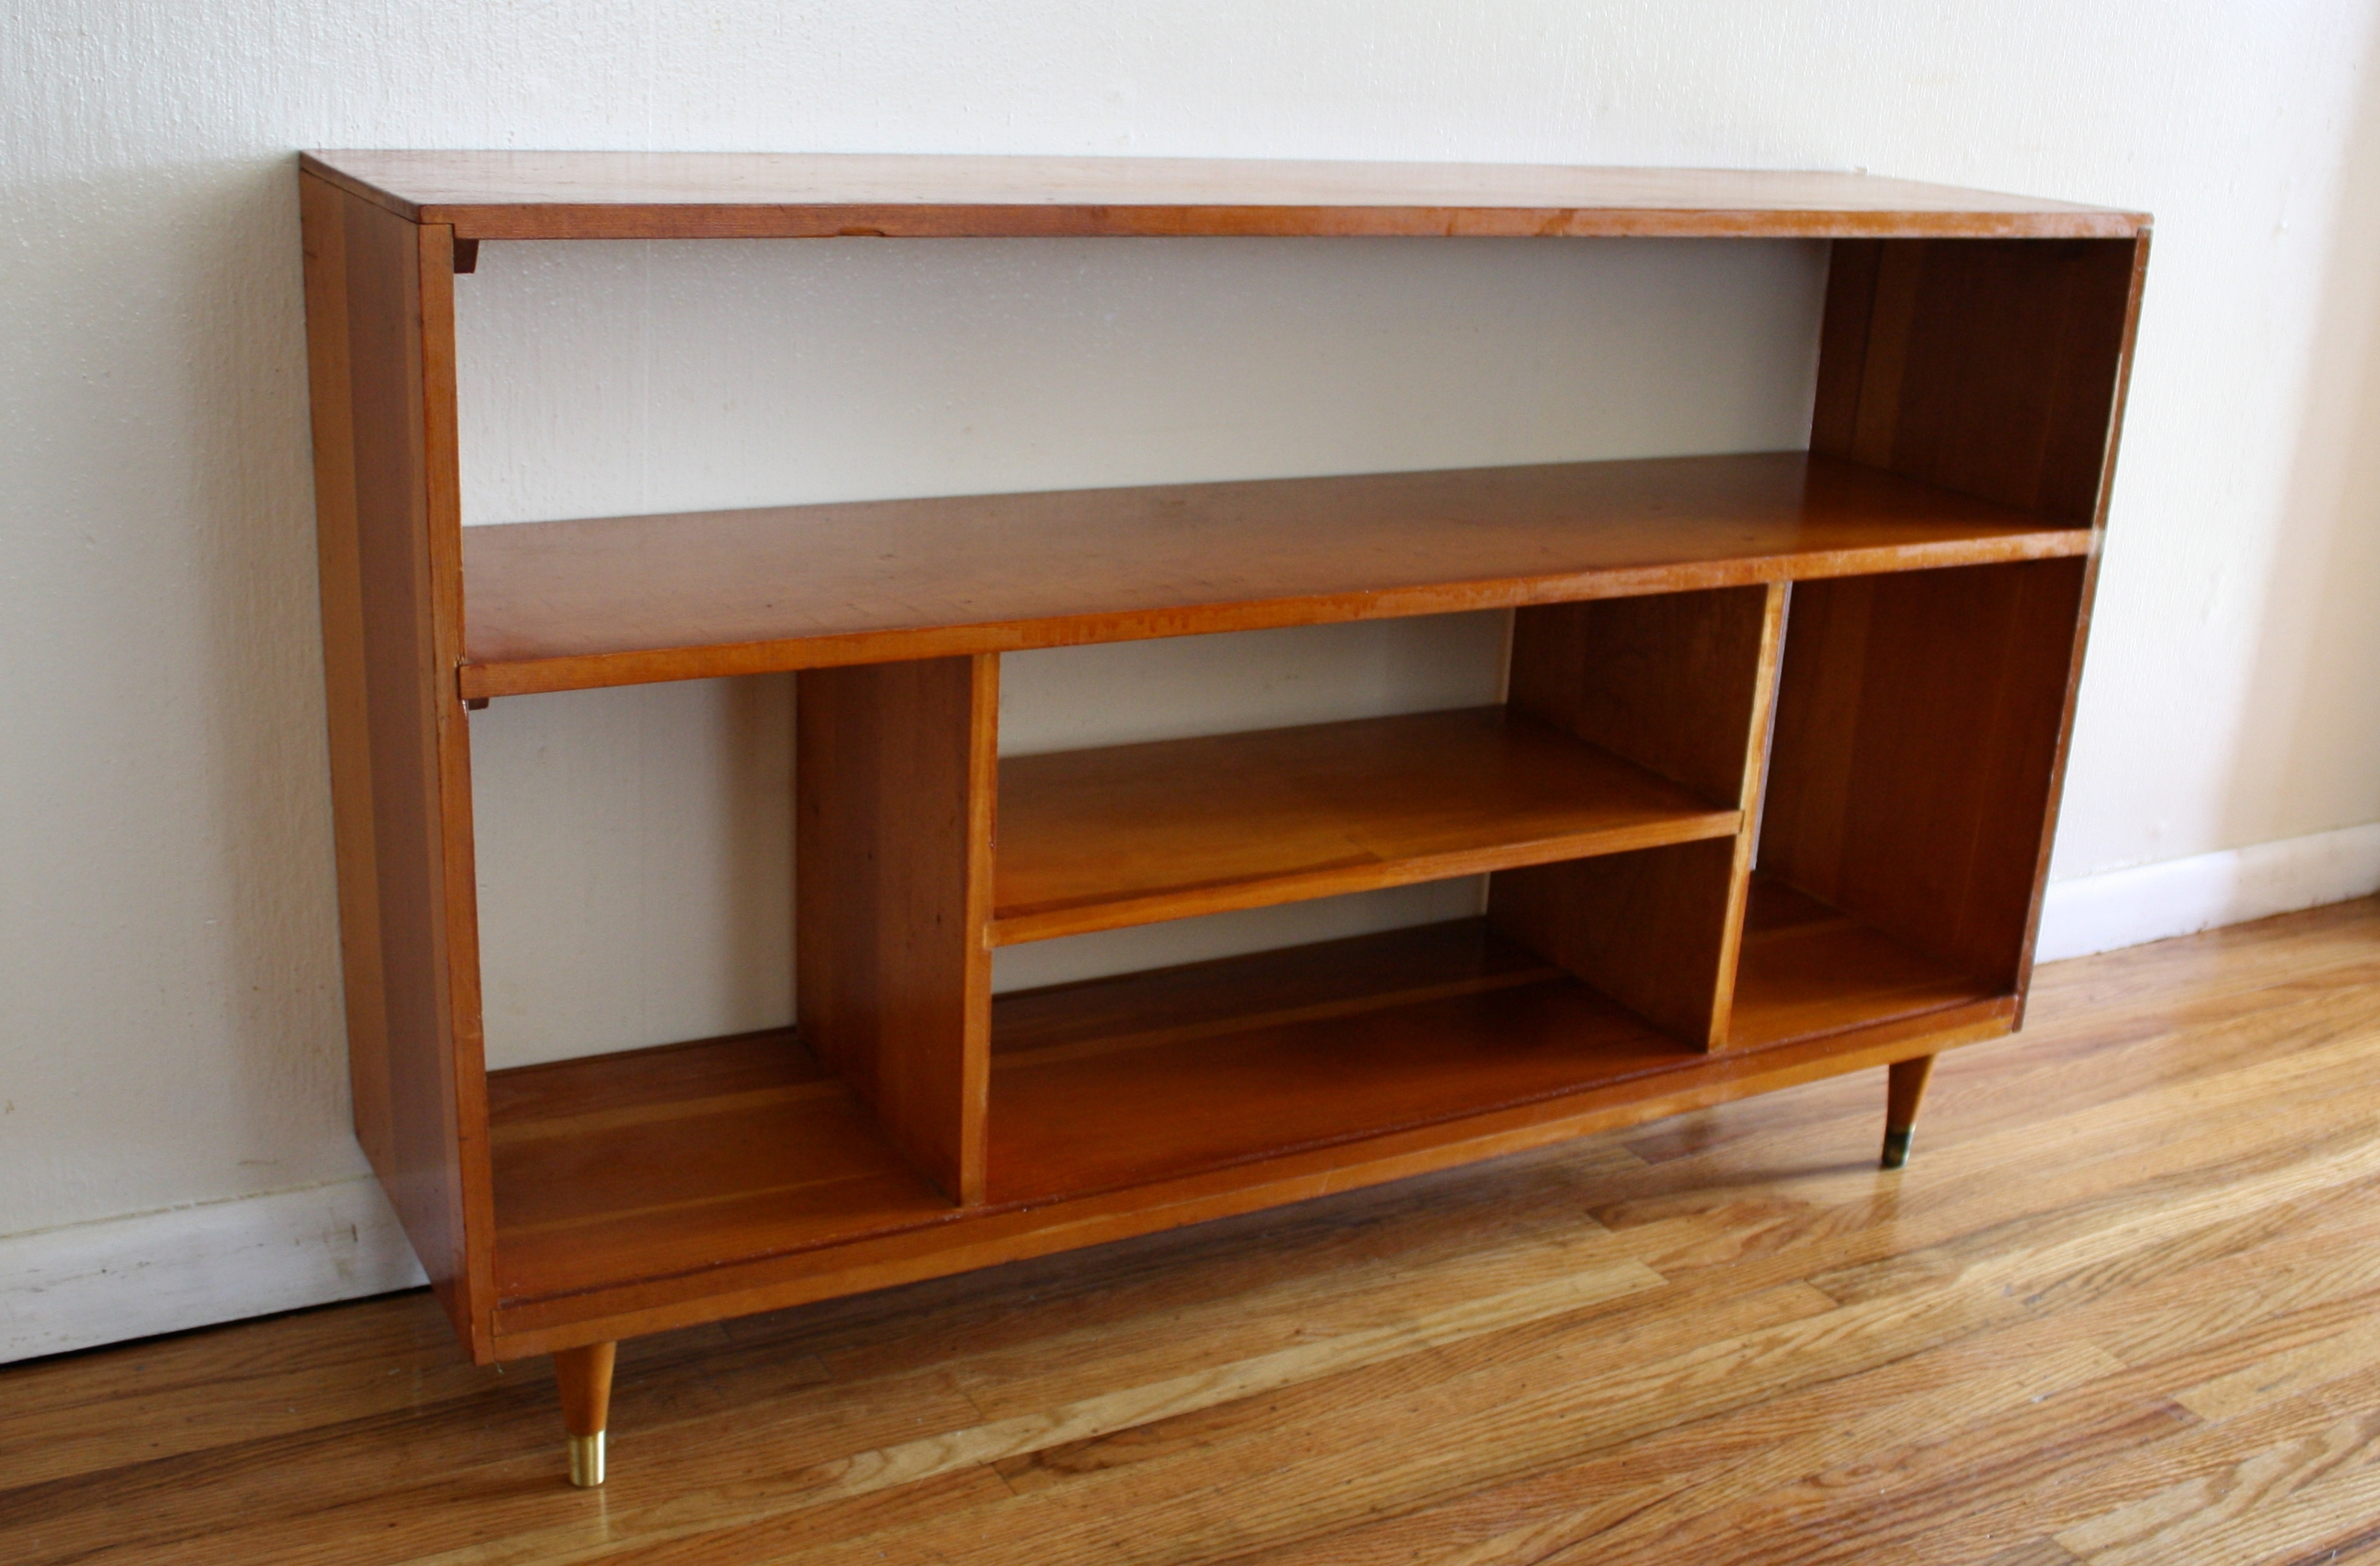 Picked Vintage Intended For Most Current Mid Century Modern Bookcases (View 13 of 15)